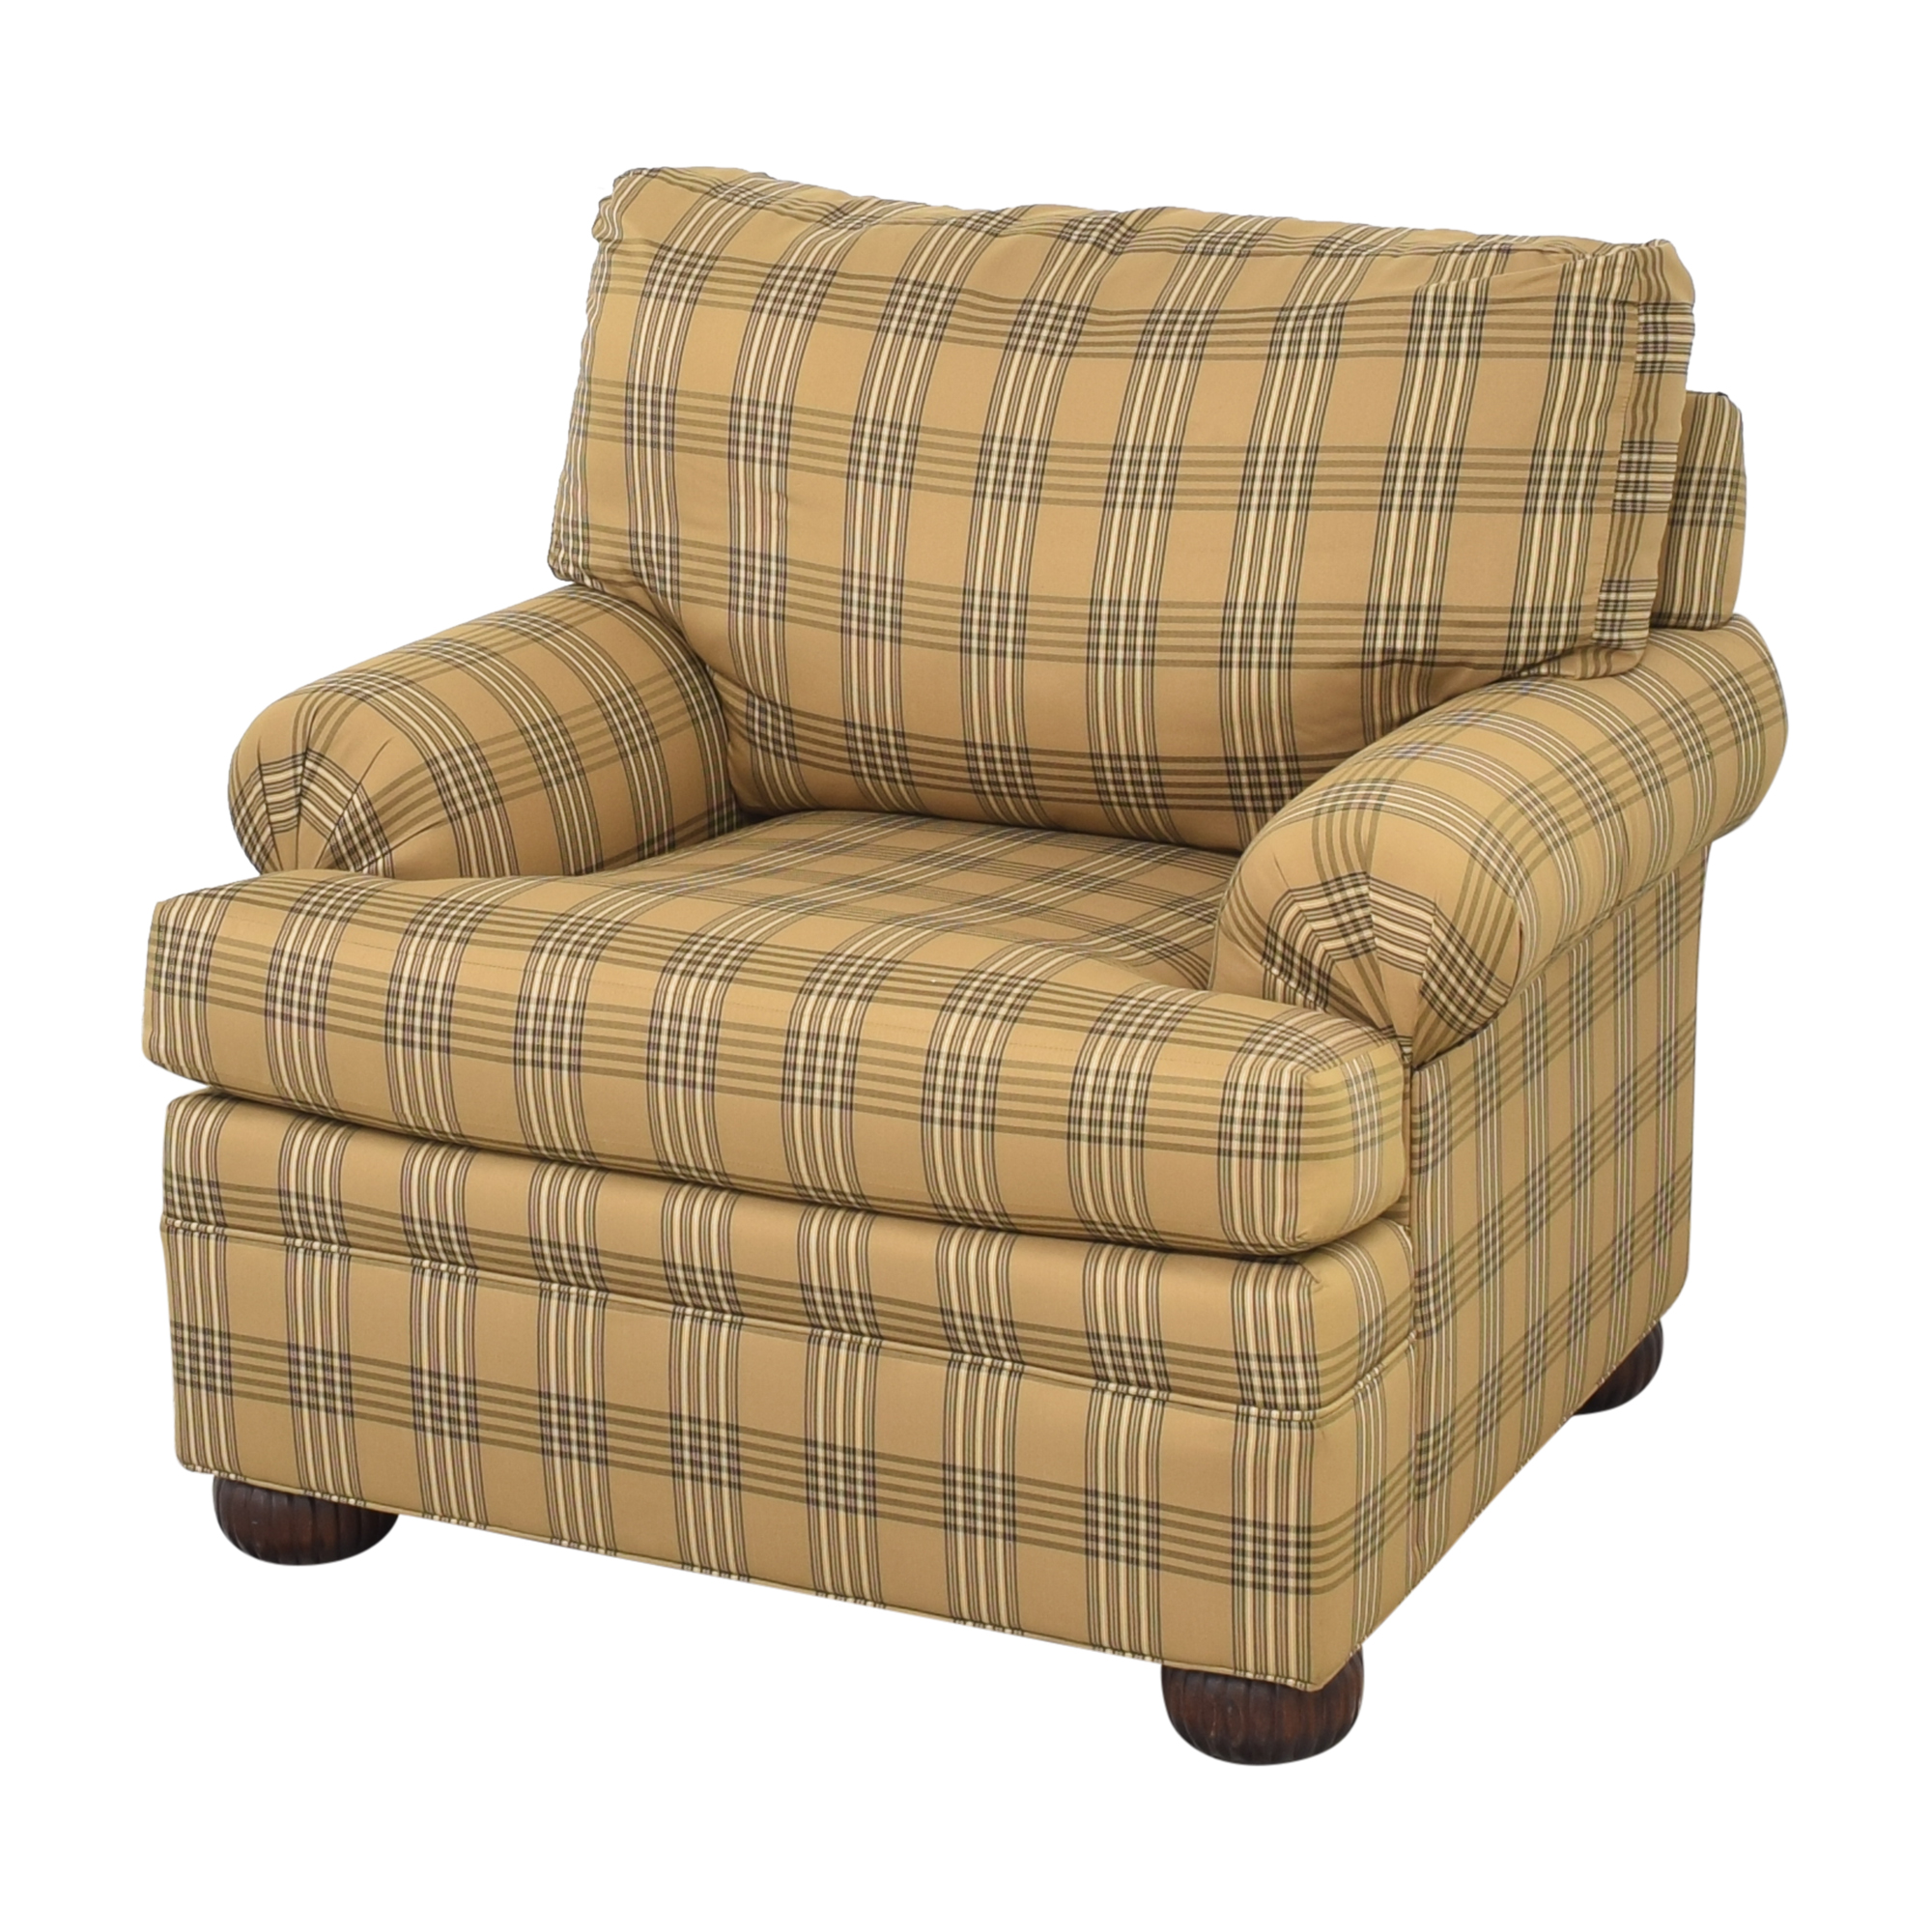 Ethan Allen Ethan Allen Club Chair and Ottoman Accent Chairs